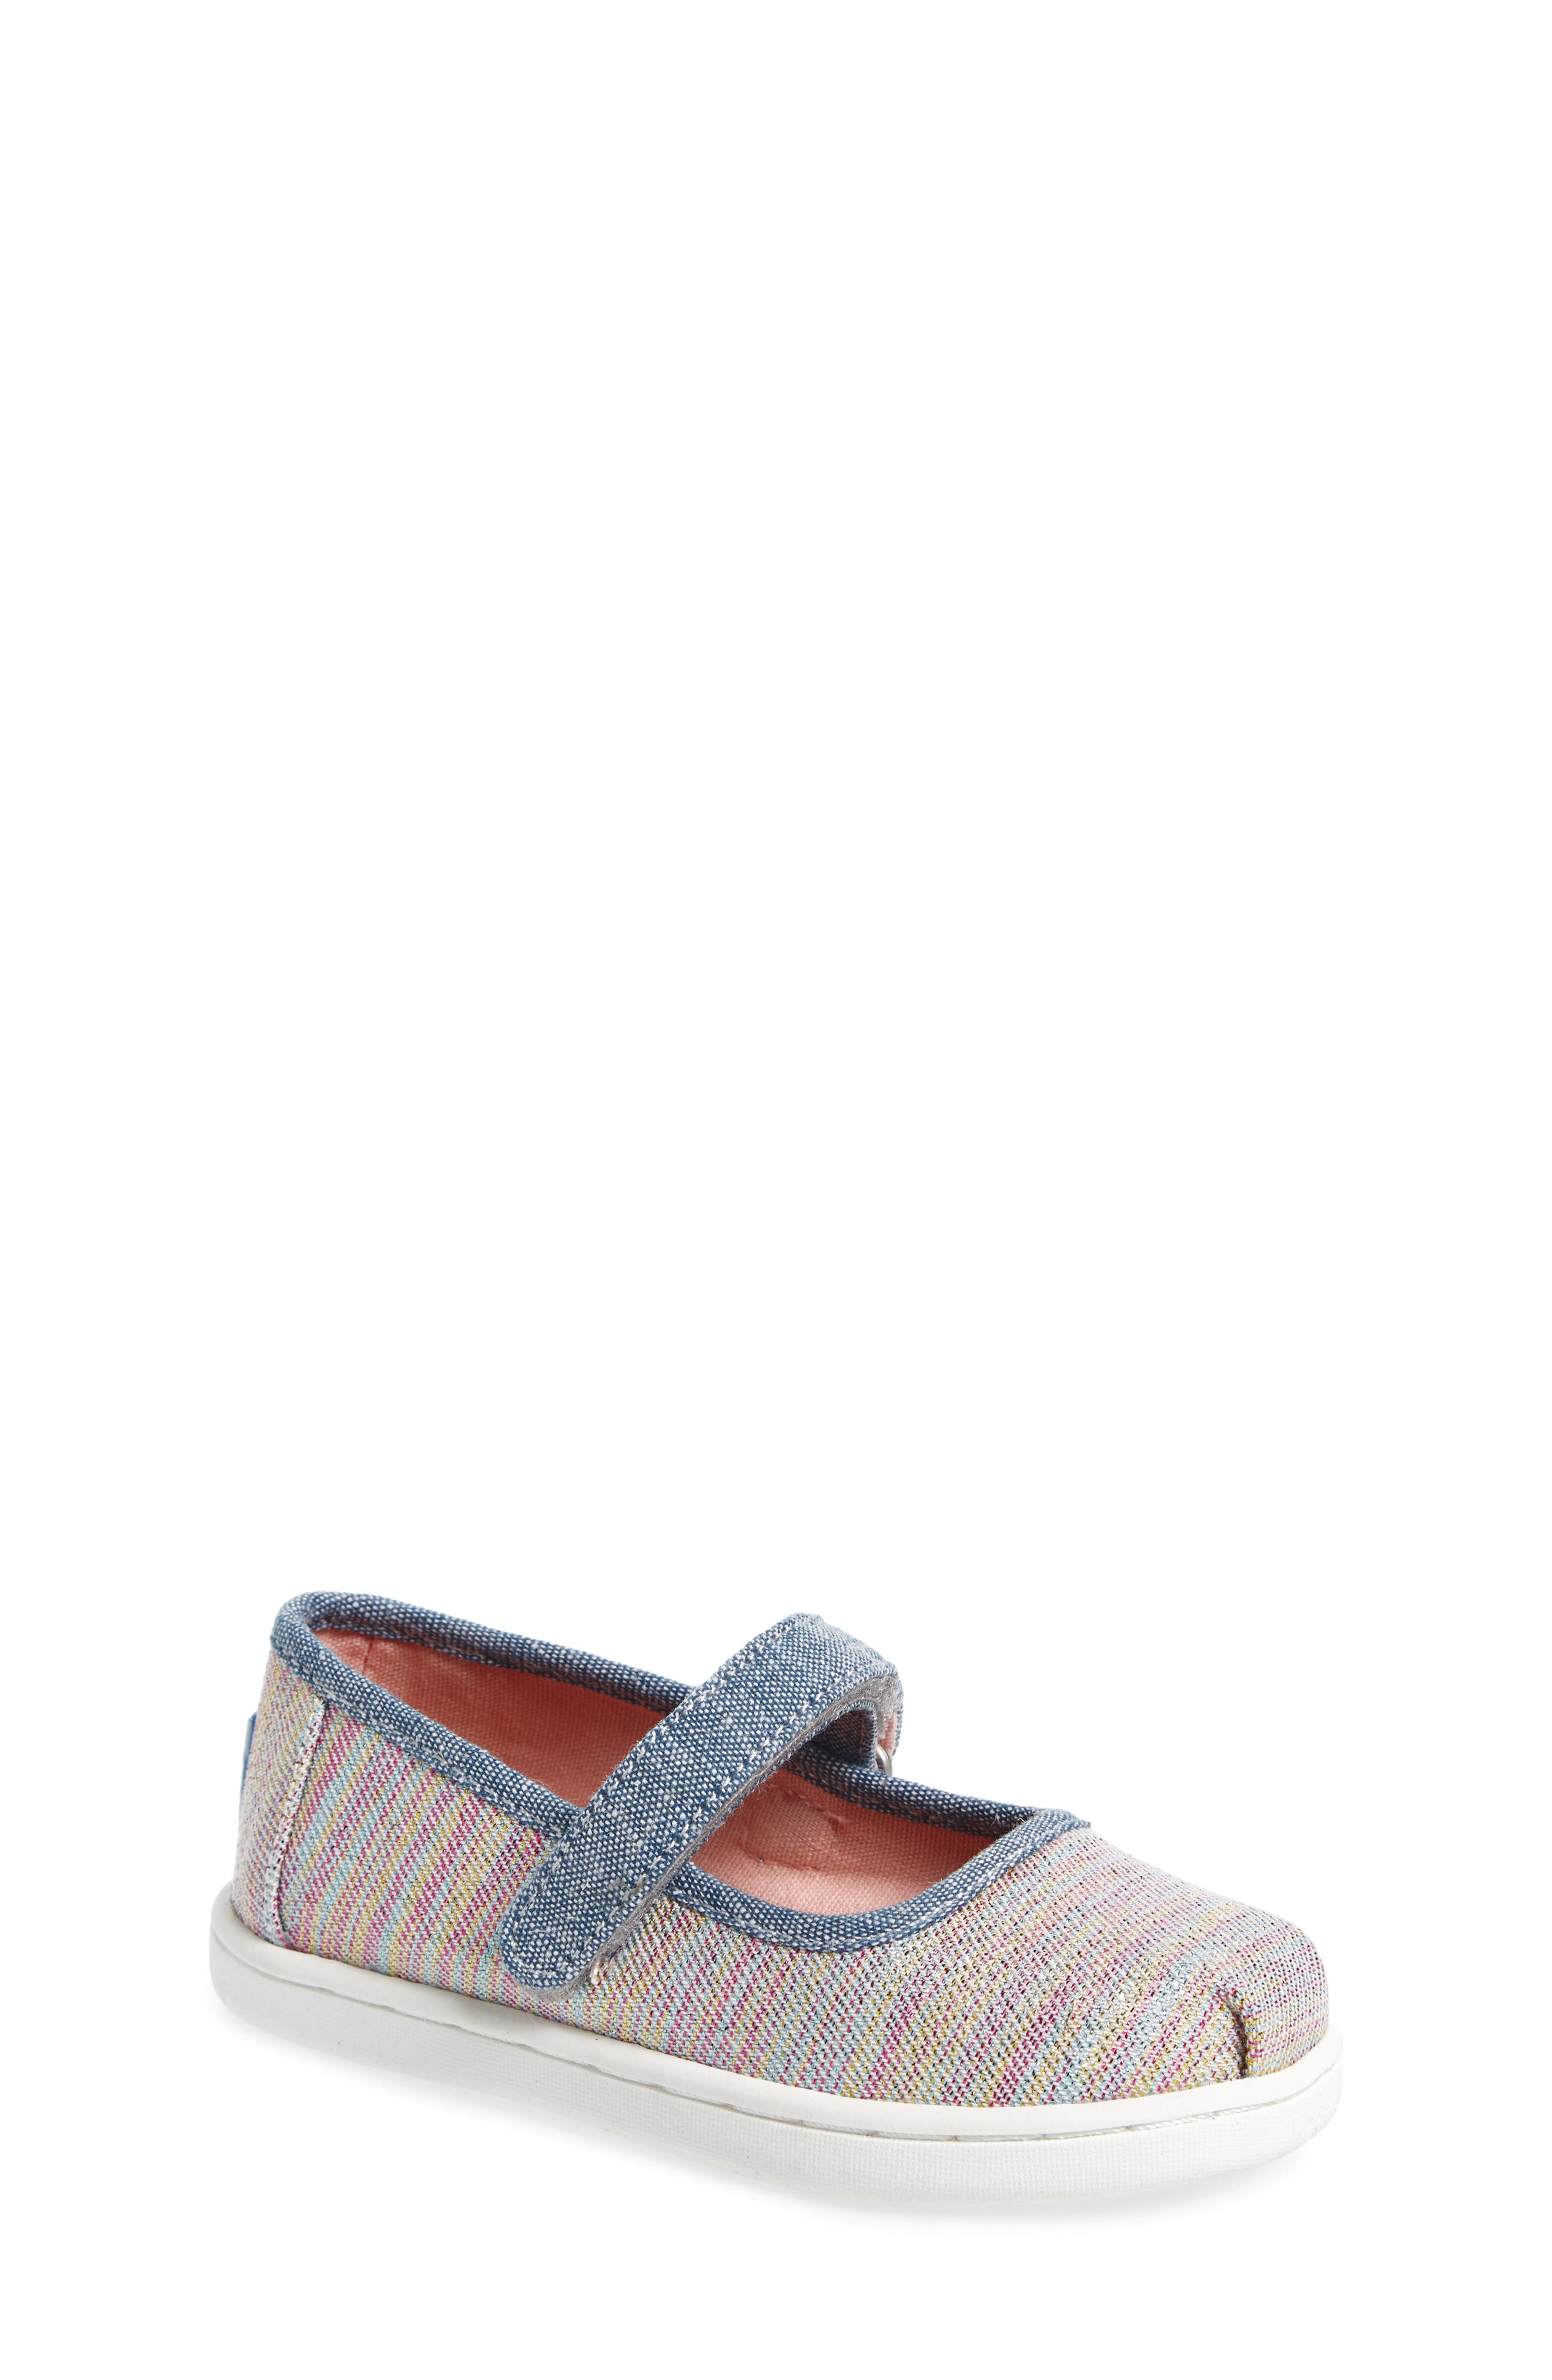 Main Image - TOMS Mary Jane Sneaker (Baby, Walker & Toddler)